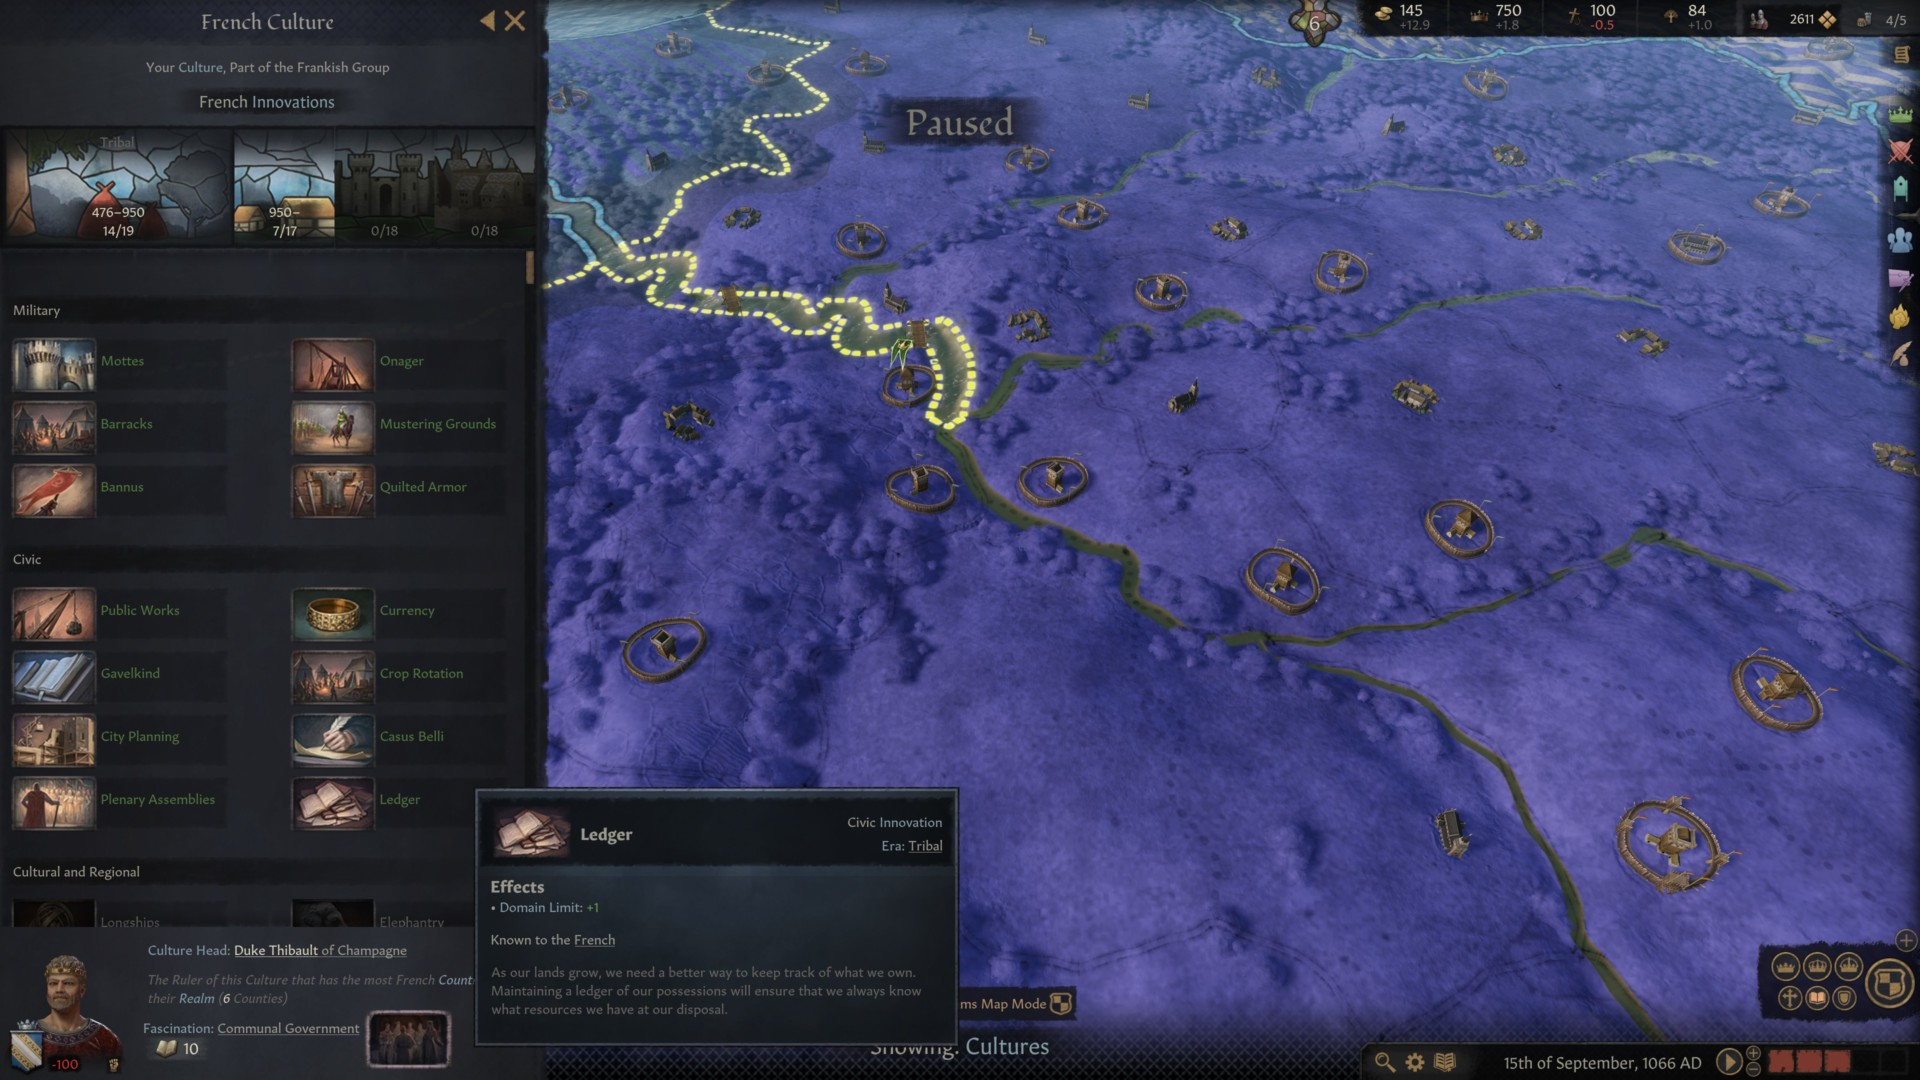 Crusader Kings III: Realm holdings and special buildings guide